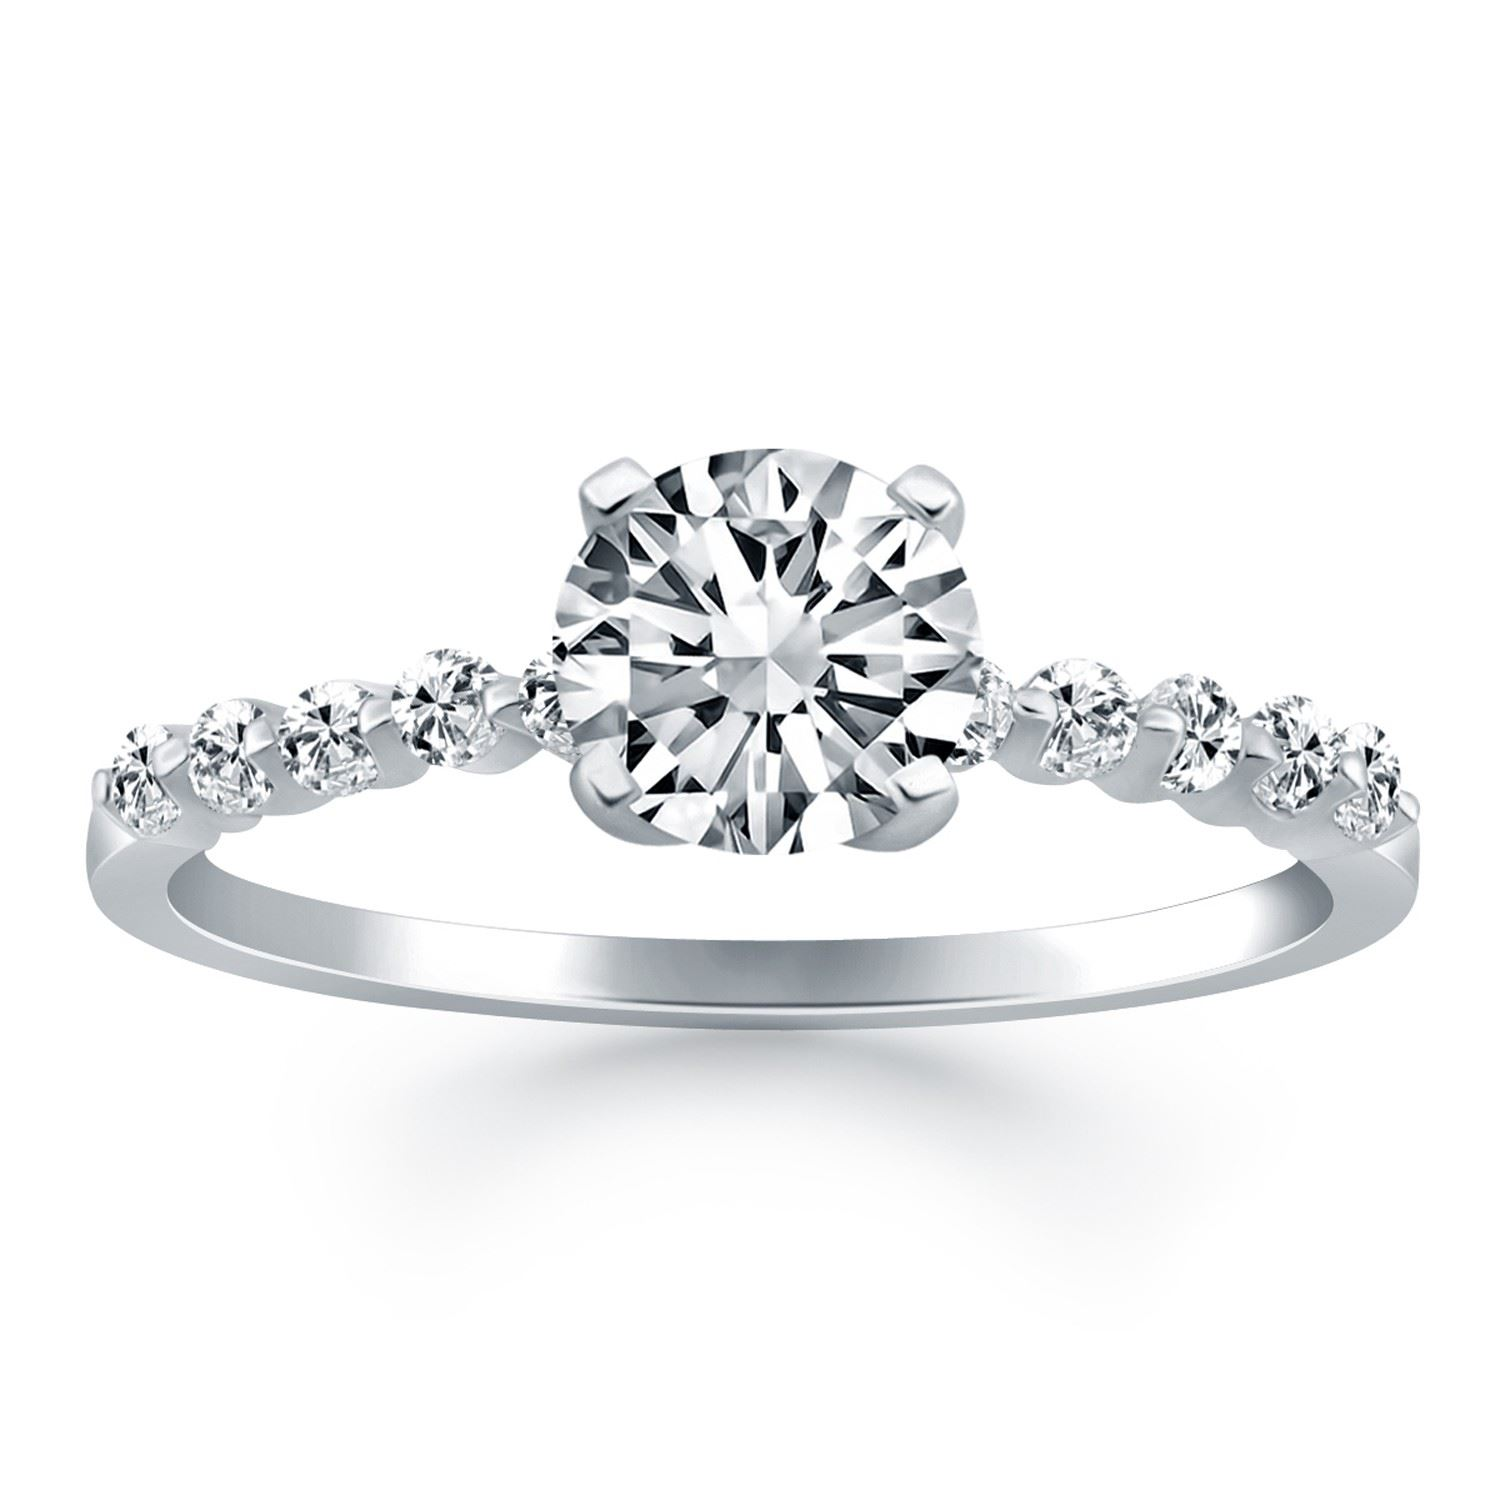 rings collection round s engagement diamond prong stone full ring koerbers koerber destination shared fine jewelry your